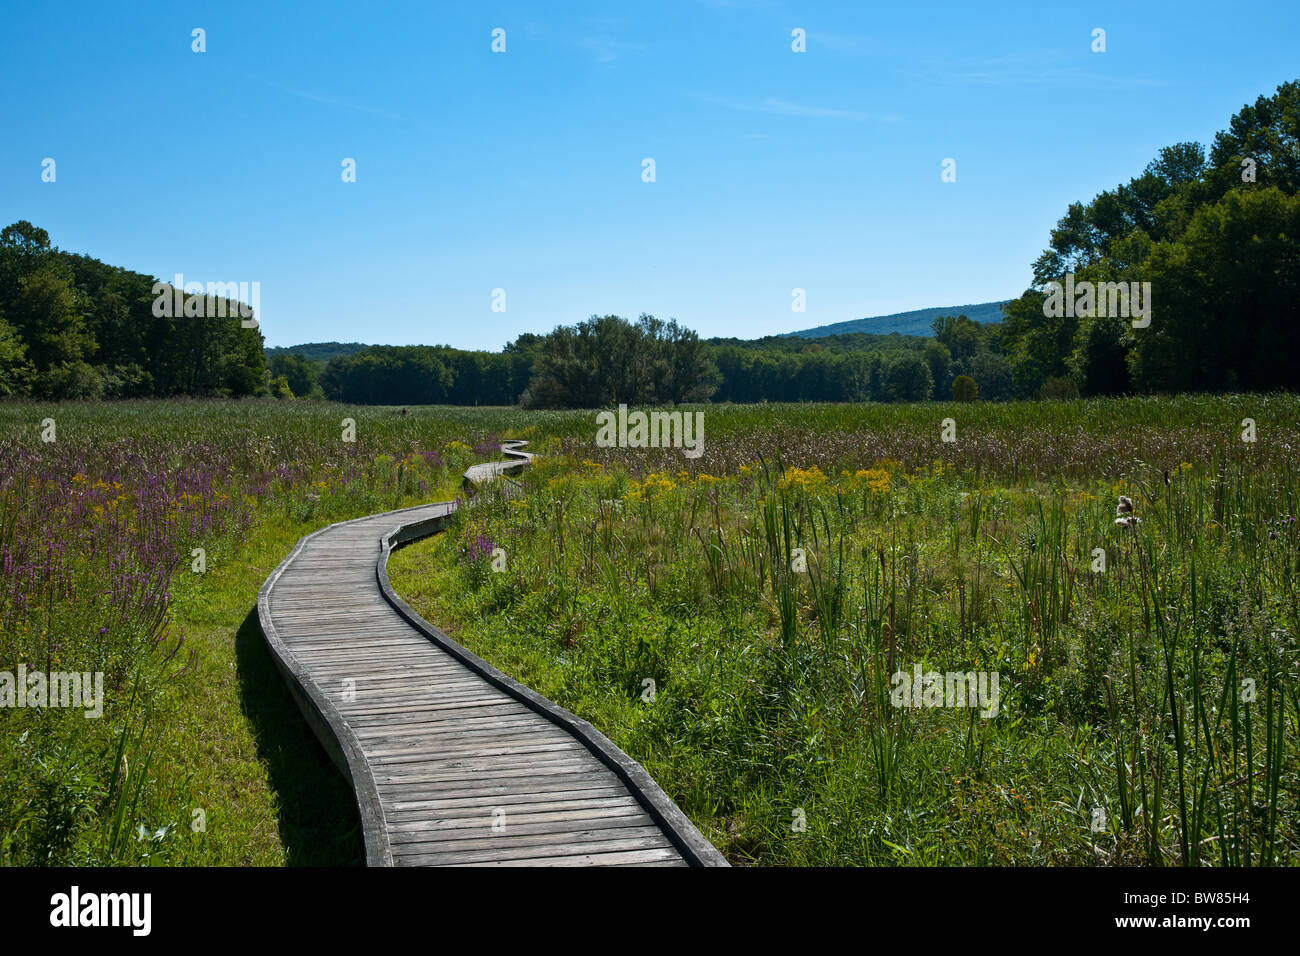 Wooden path of the Appalachian Trail - Stock Image